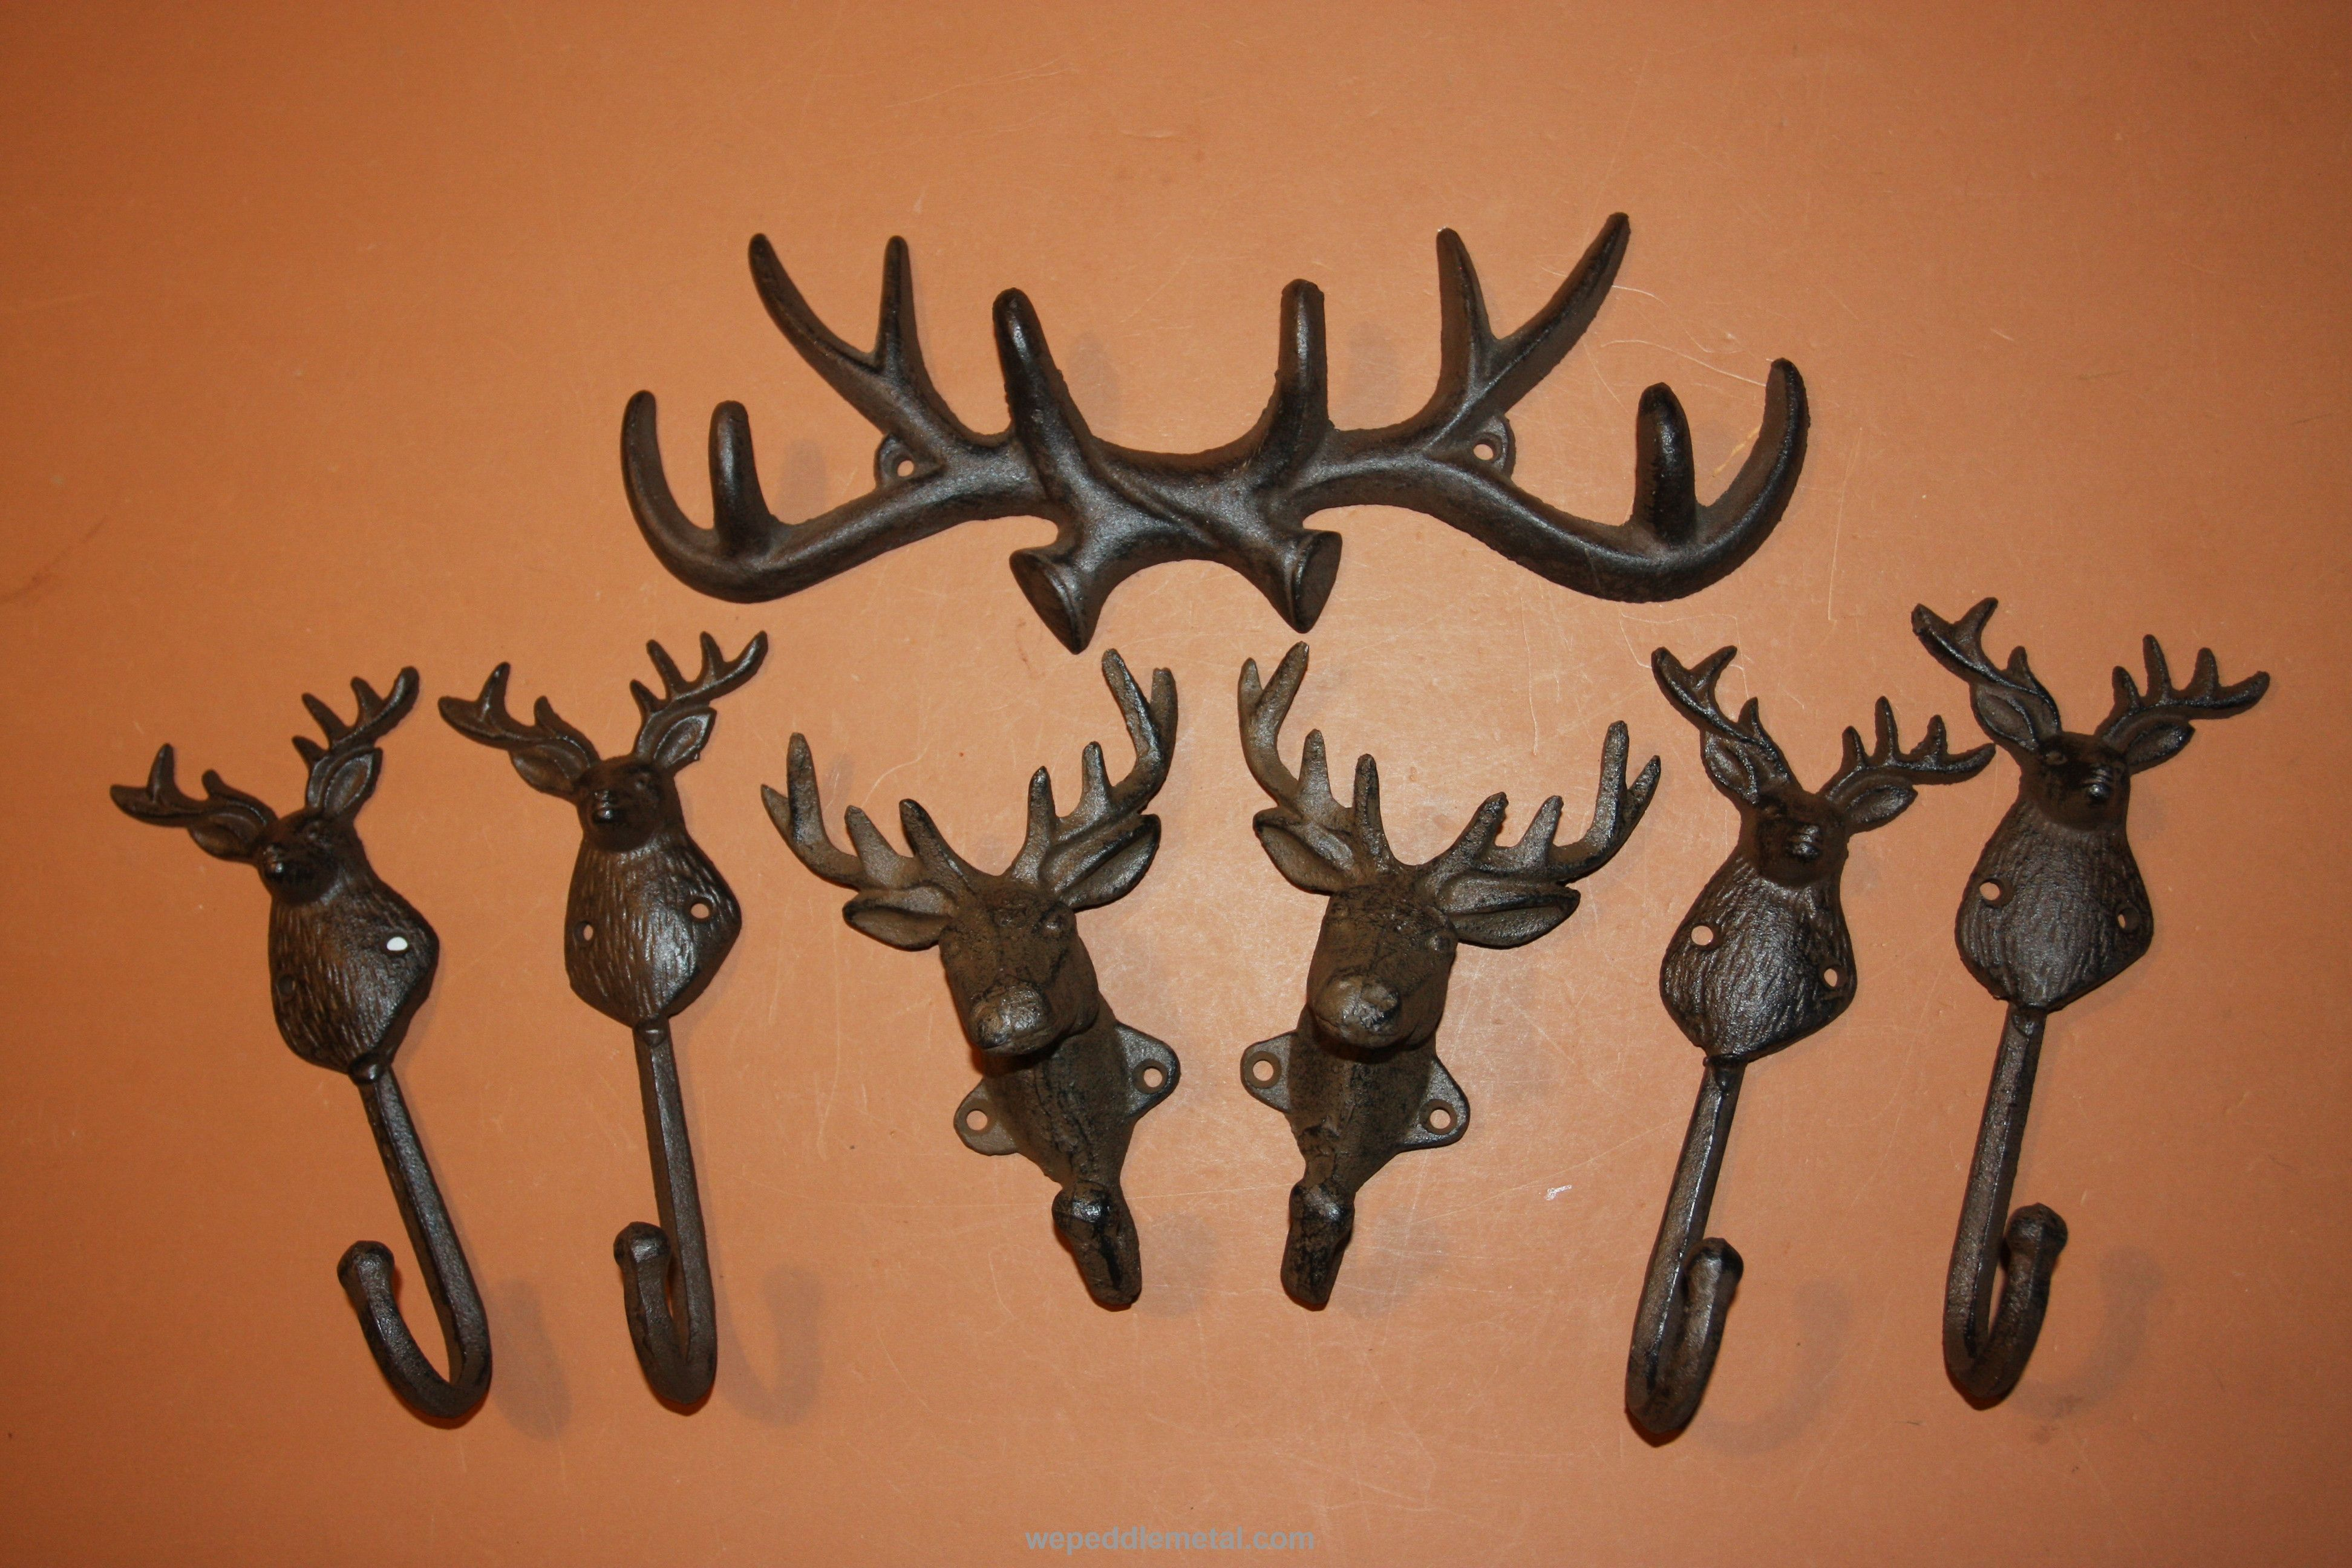 Cast iron Antler Wall Hook Rack Rustic Cabin Lodge Home Decor